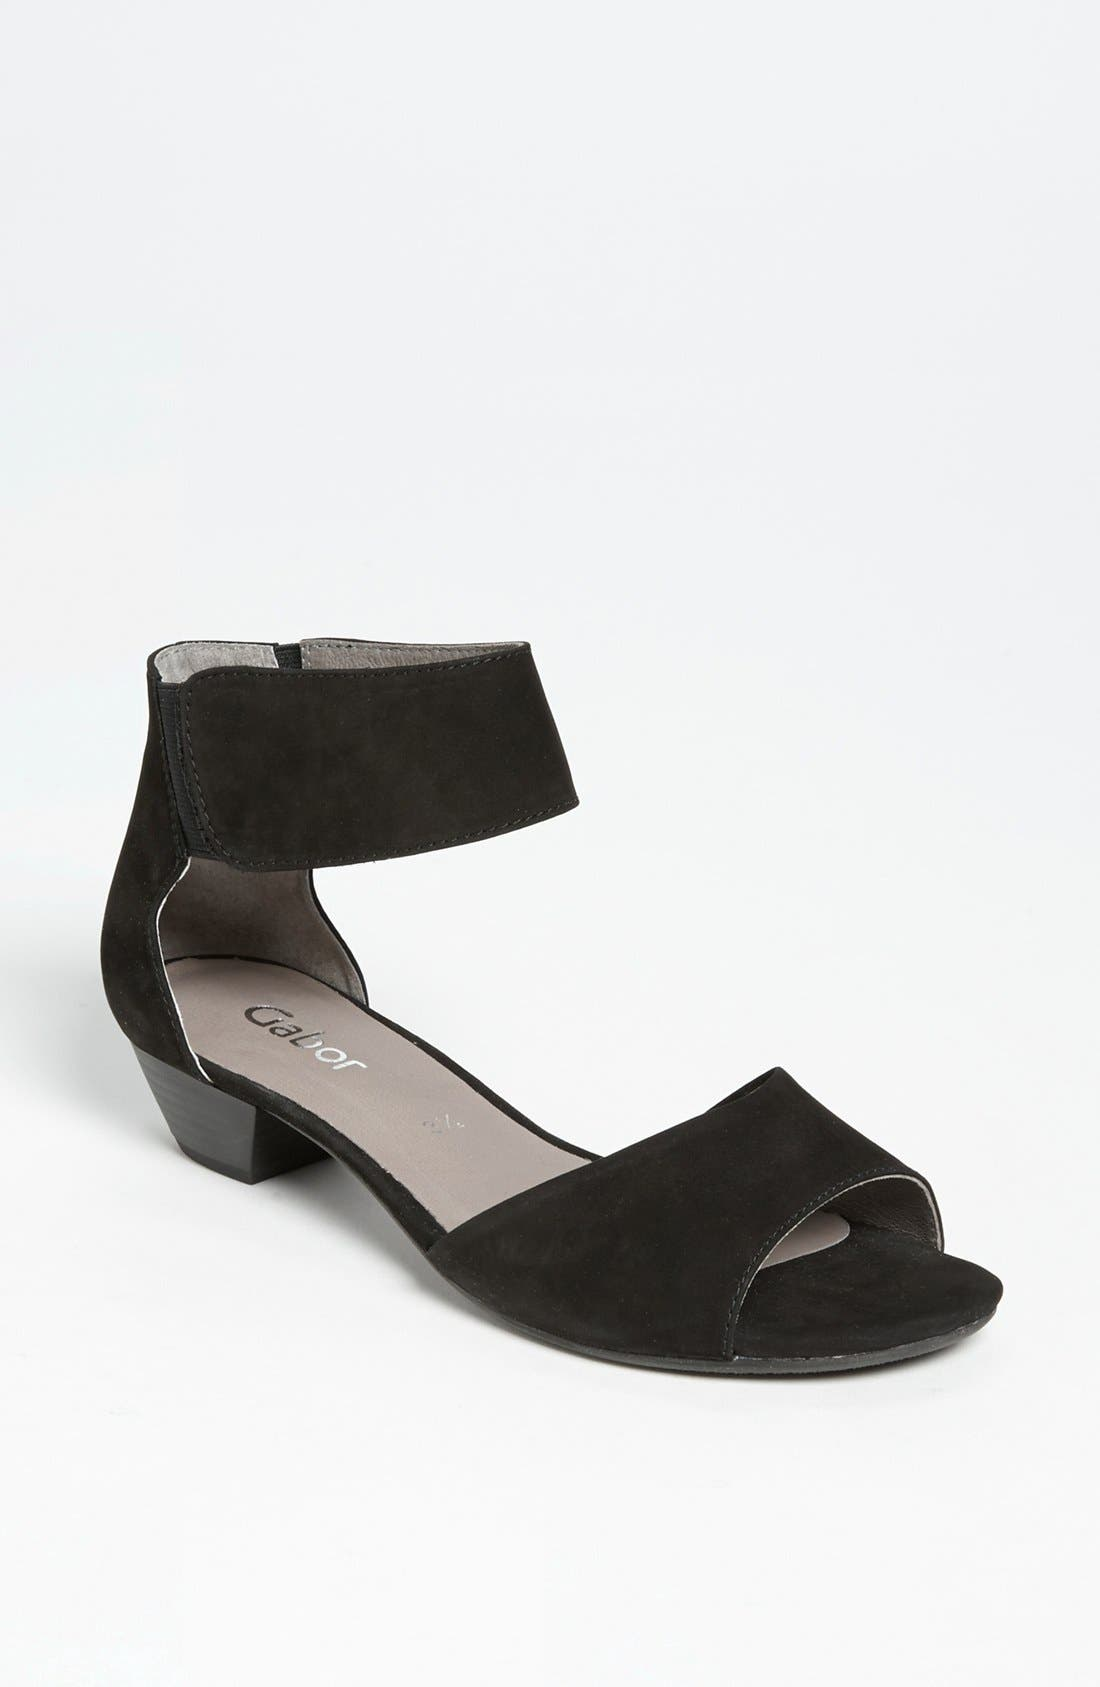 Alternate Image 1 Selected - Gabor Sandal (Online Only)